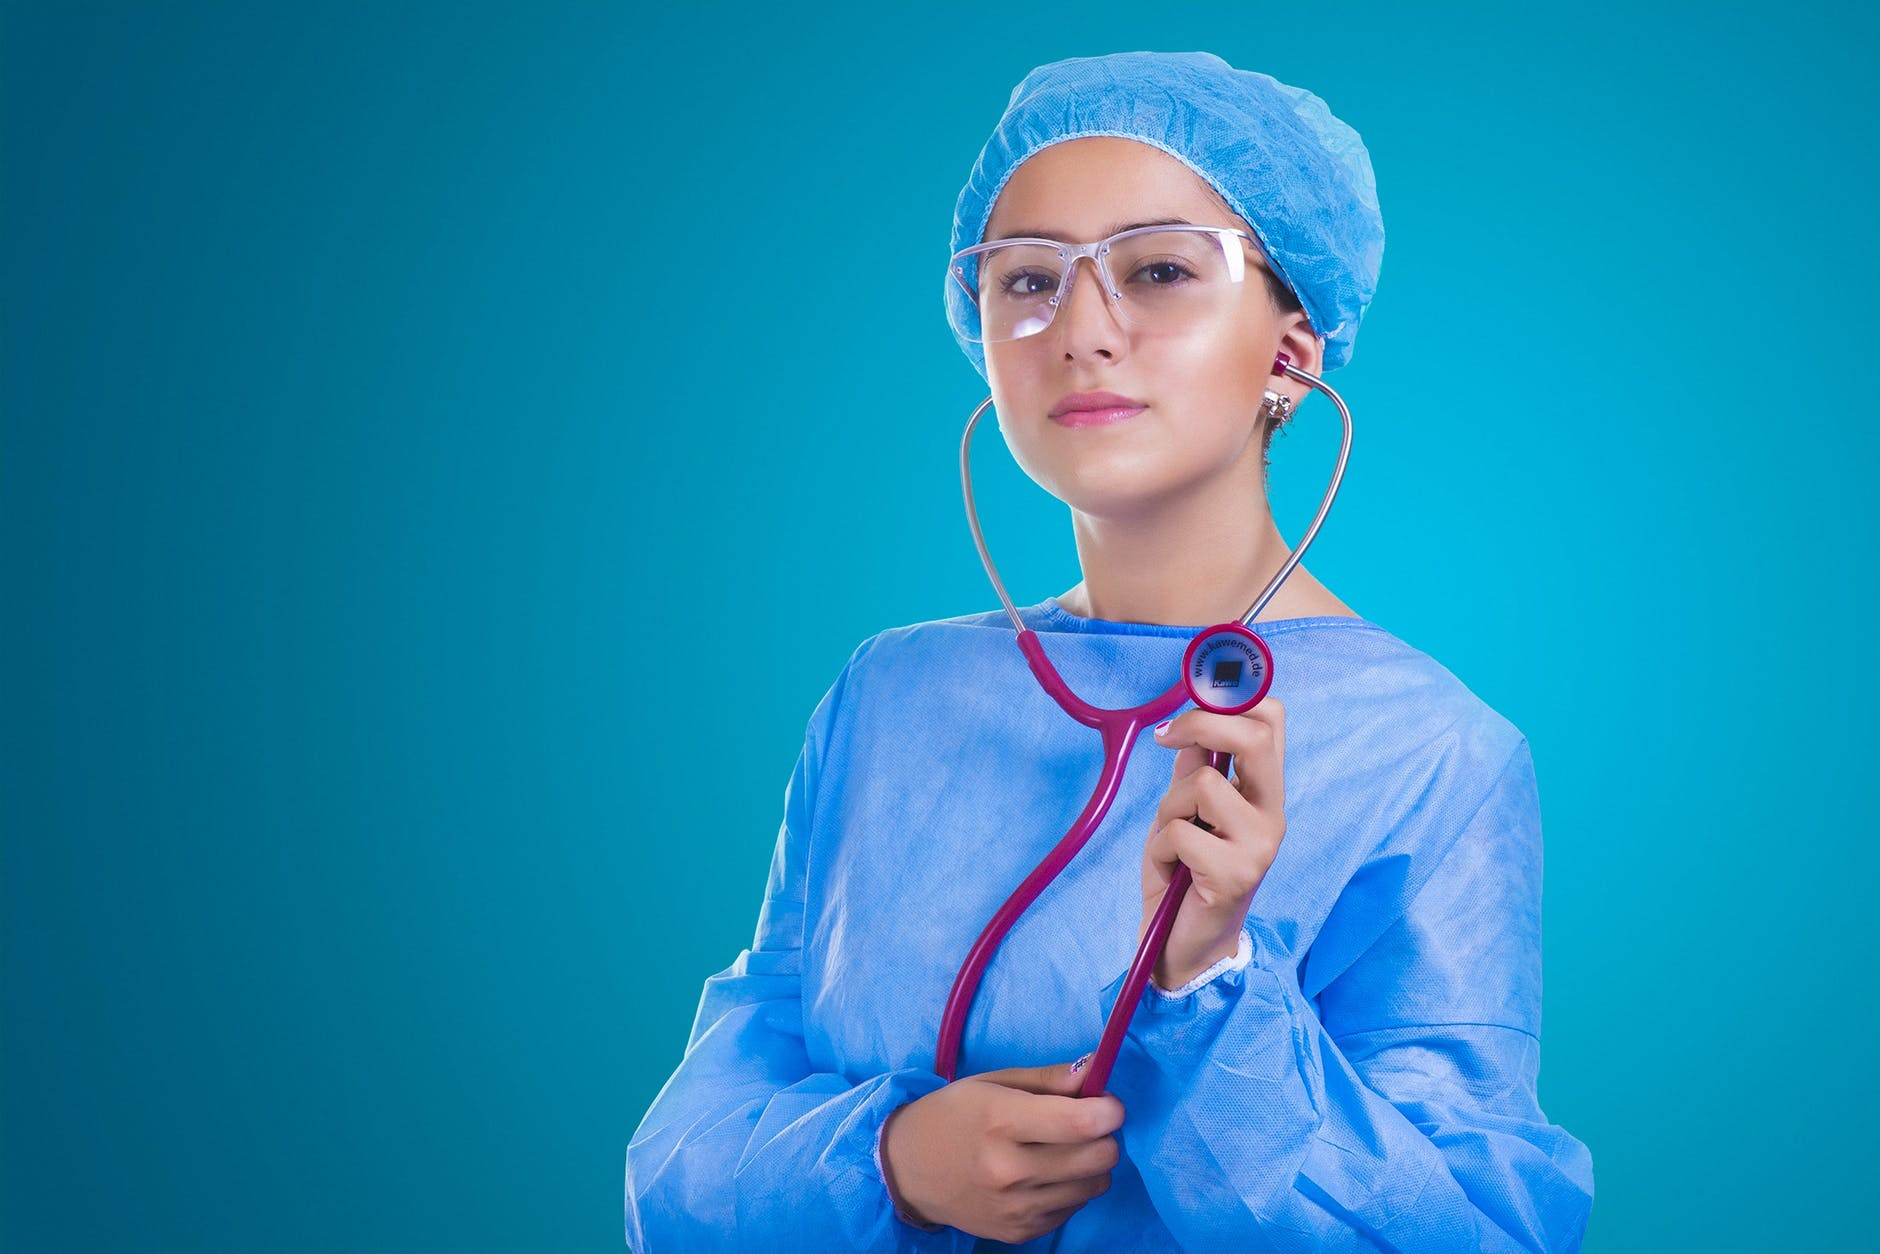 adult doctor girl healthcare